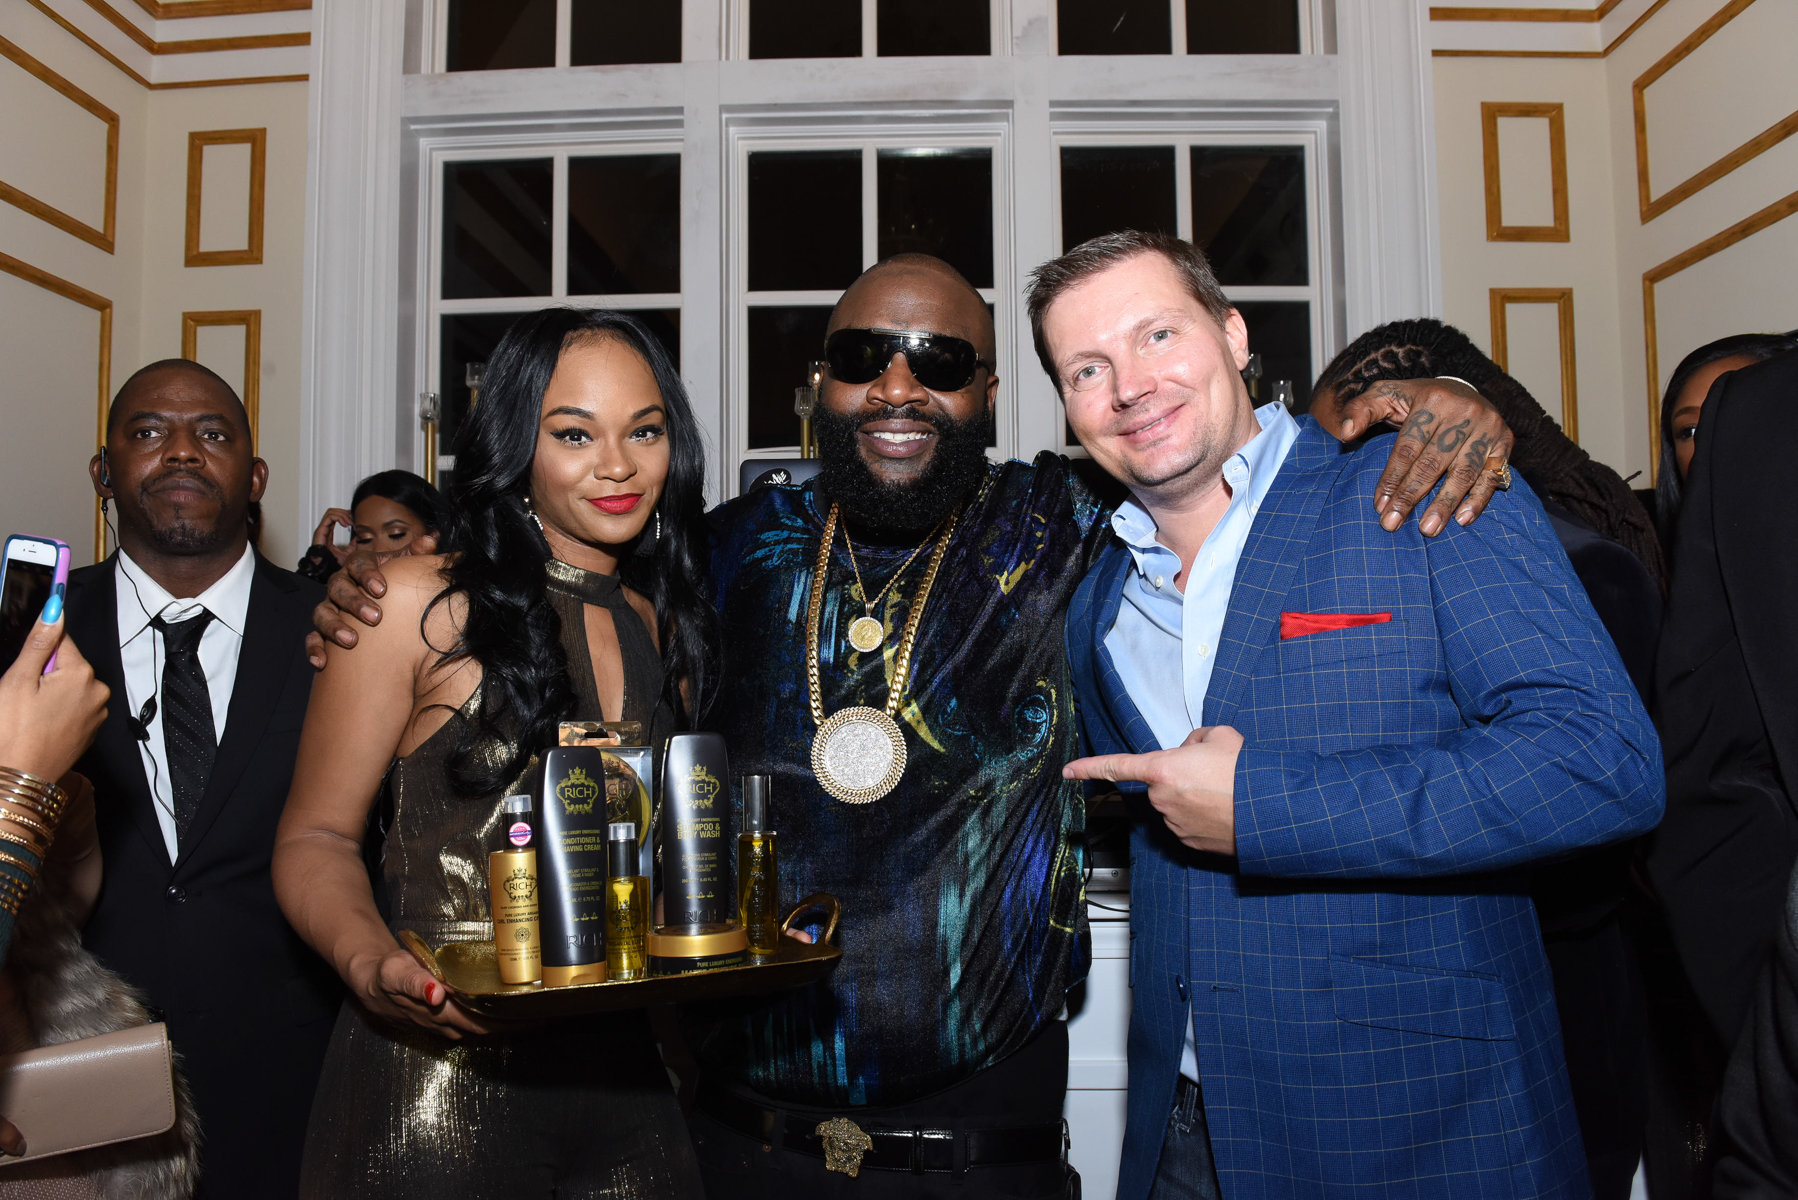 Rick Ross and his business partner celebrate at Rick's house